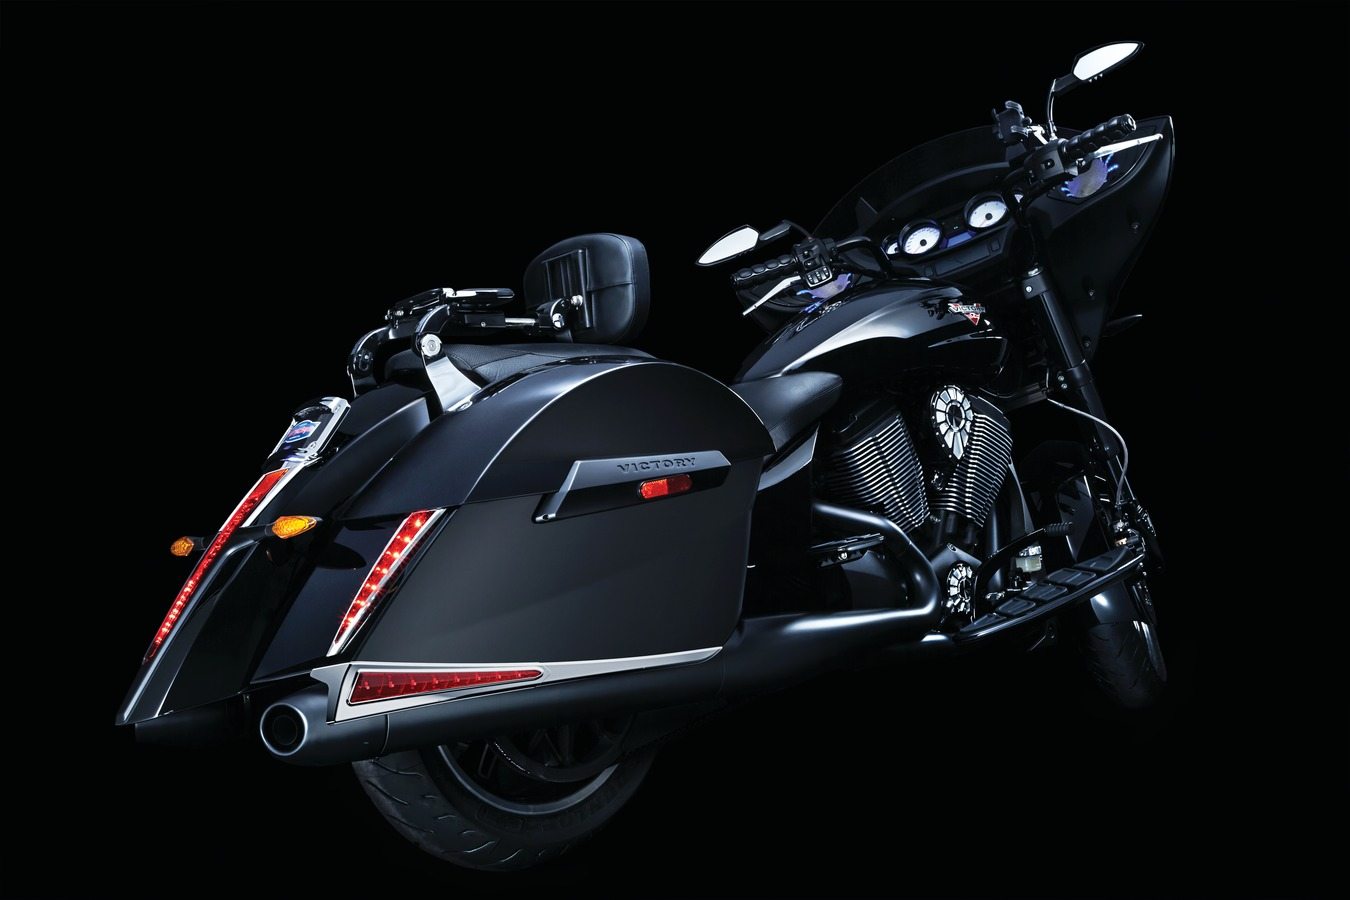 Saddlebag Led Accent Lights Chrome Black Victory Only Lighting Wiring Diagram Bring Some Bite To Your Bike Designed Compliment The Body Lines Of Oem